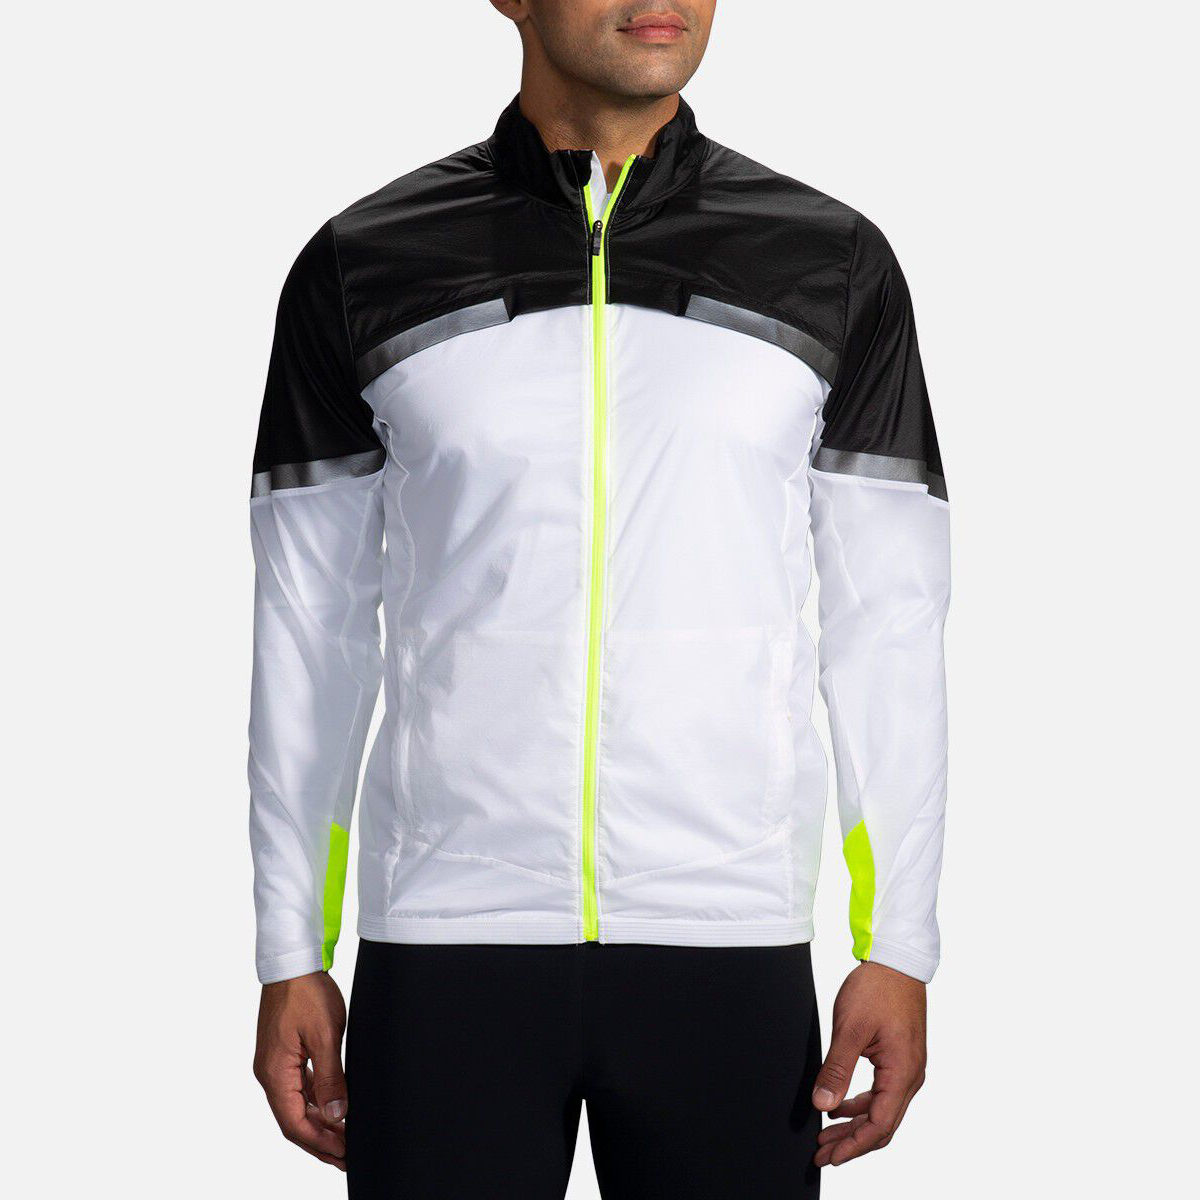 Best gifts for boyfriends - For the Early Riser: Brooks Running Carbonite Jacket